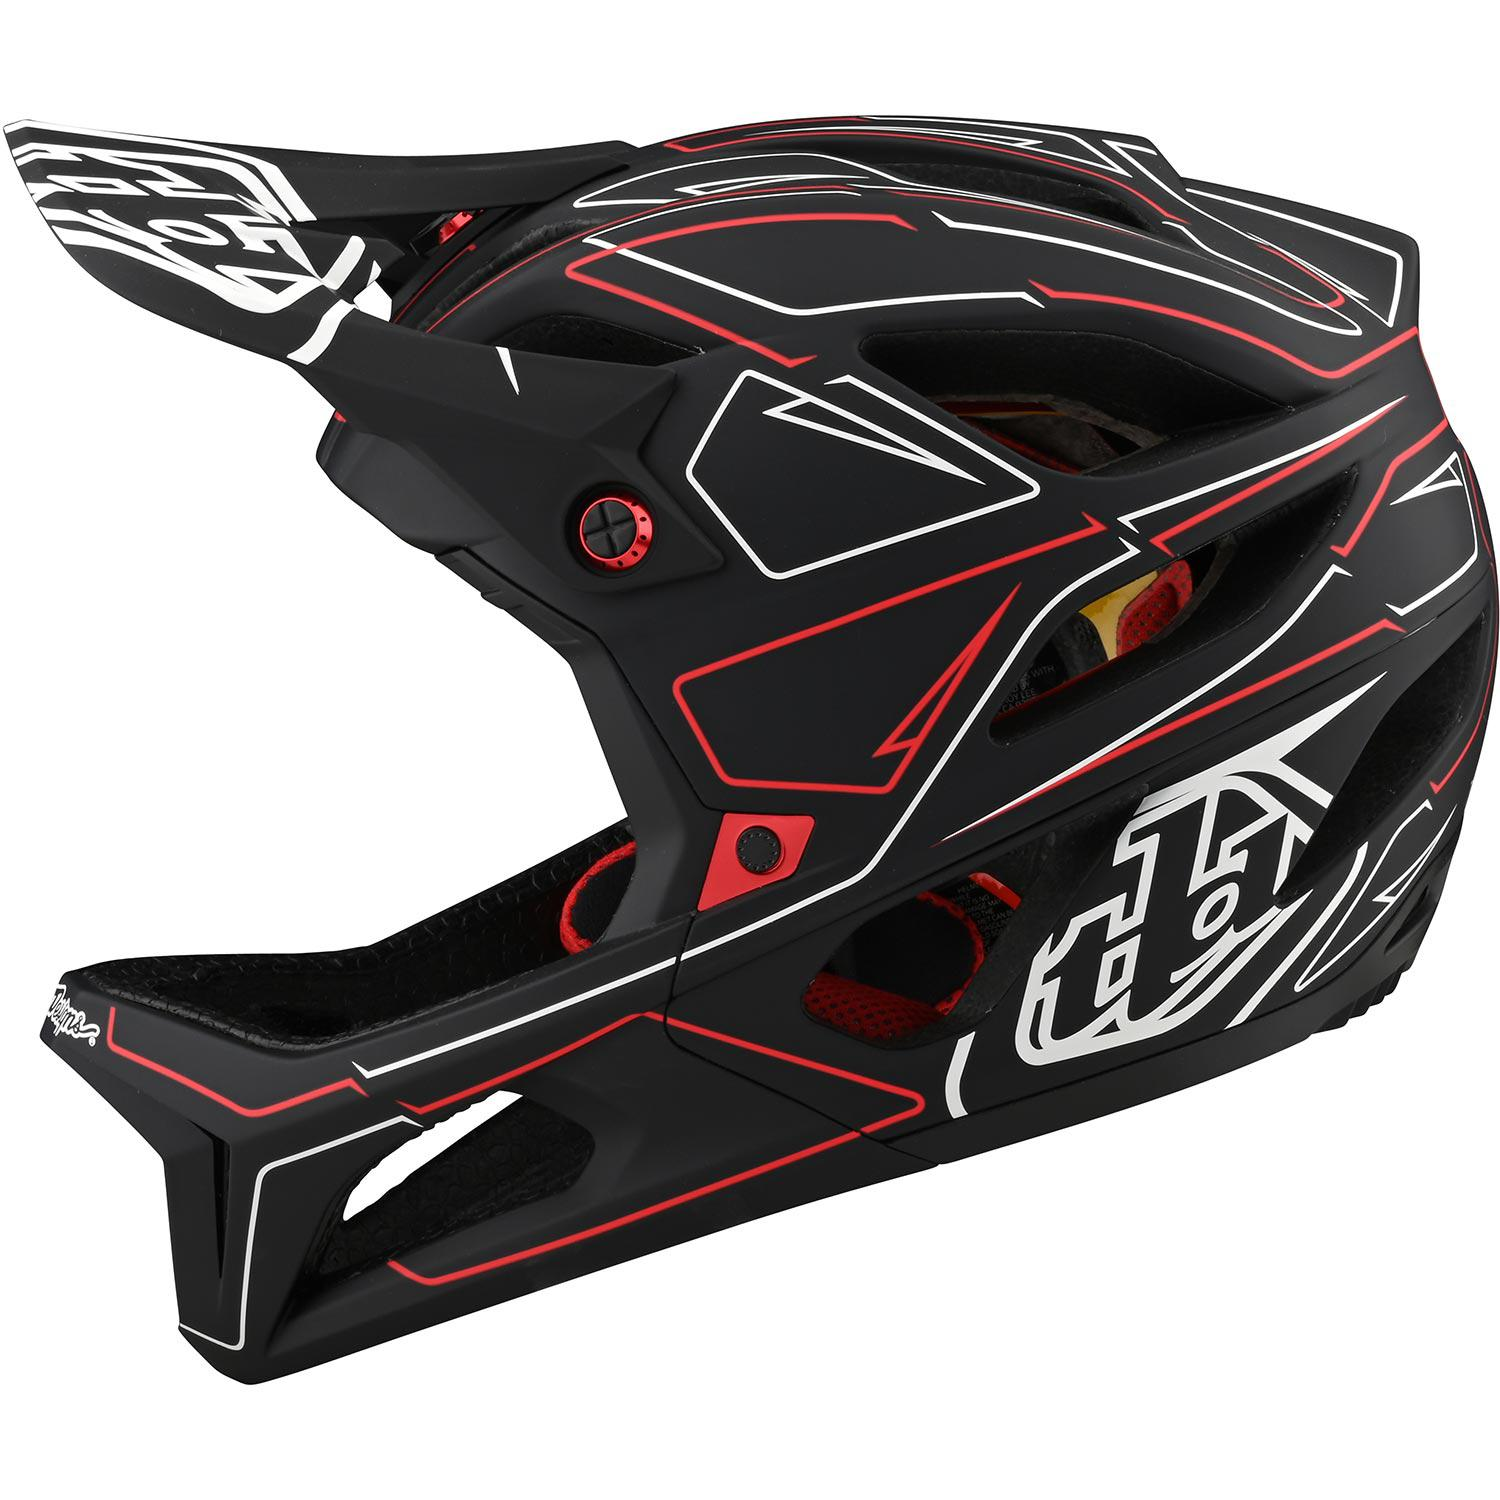 Troy Lee Designs-Troy Lee Designs Stage MIPS Helmet - Born From Paint Limited Edition-Pinstripe - Black/Red-XS/S-TLD115317001-saddleback-elite-performance-cycling